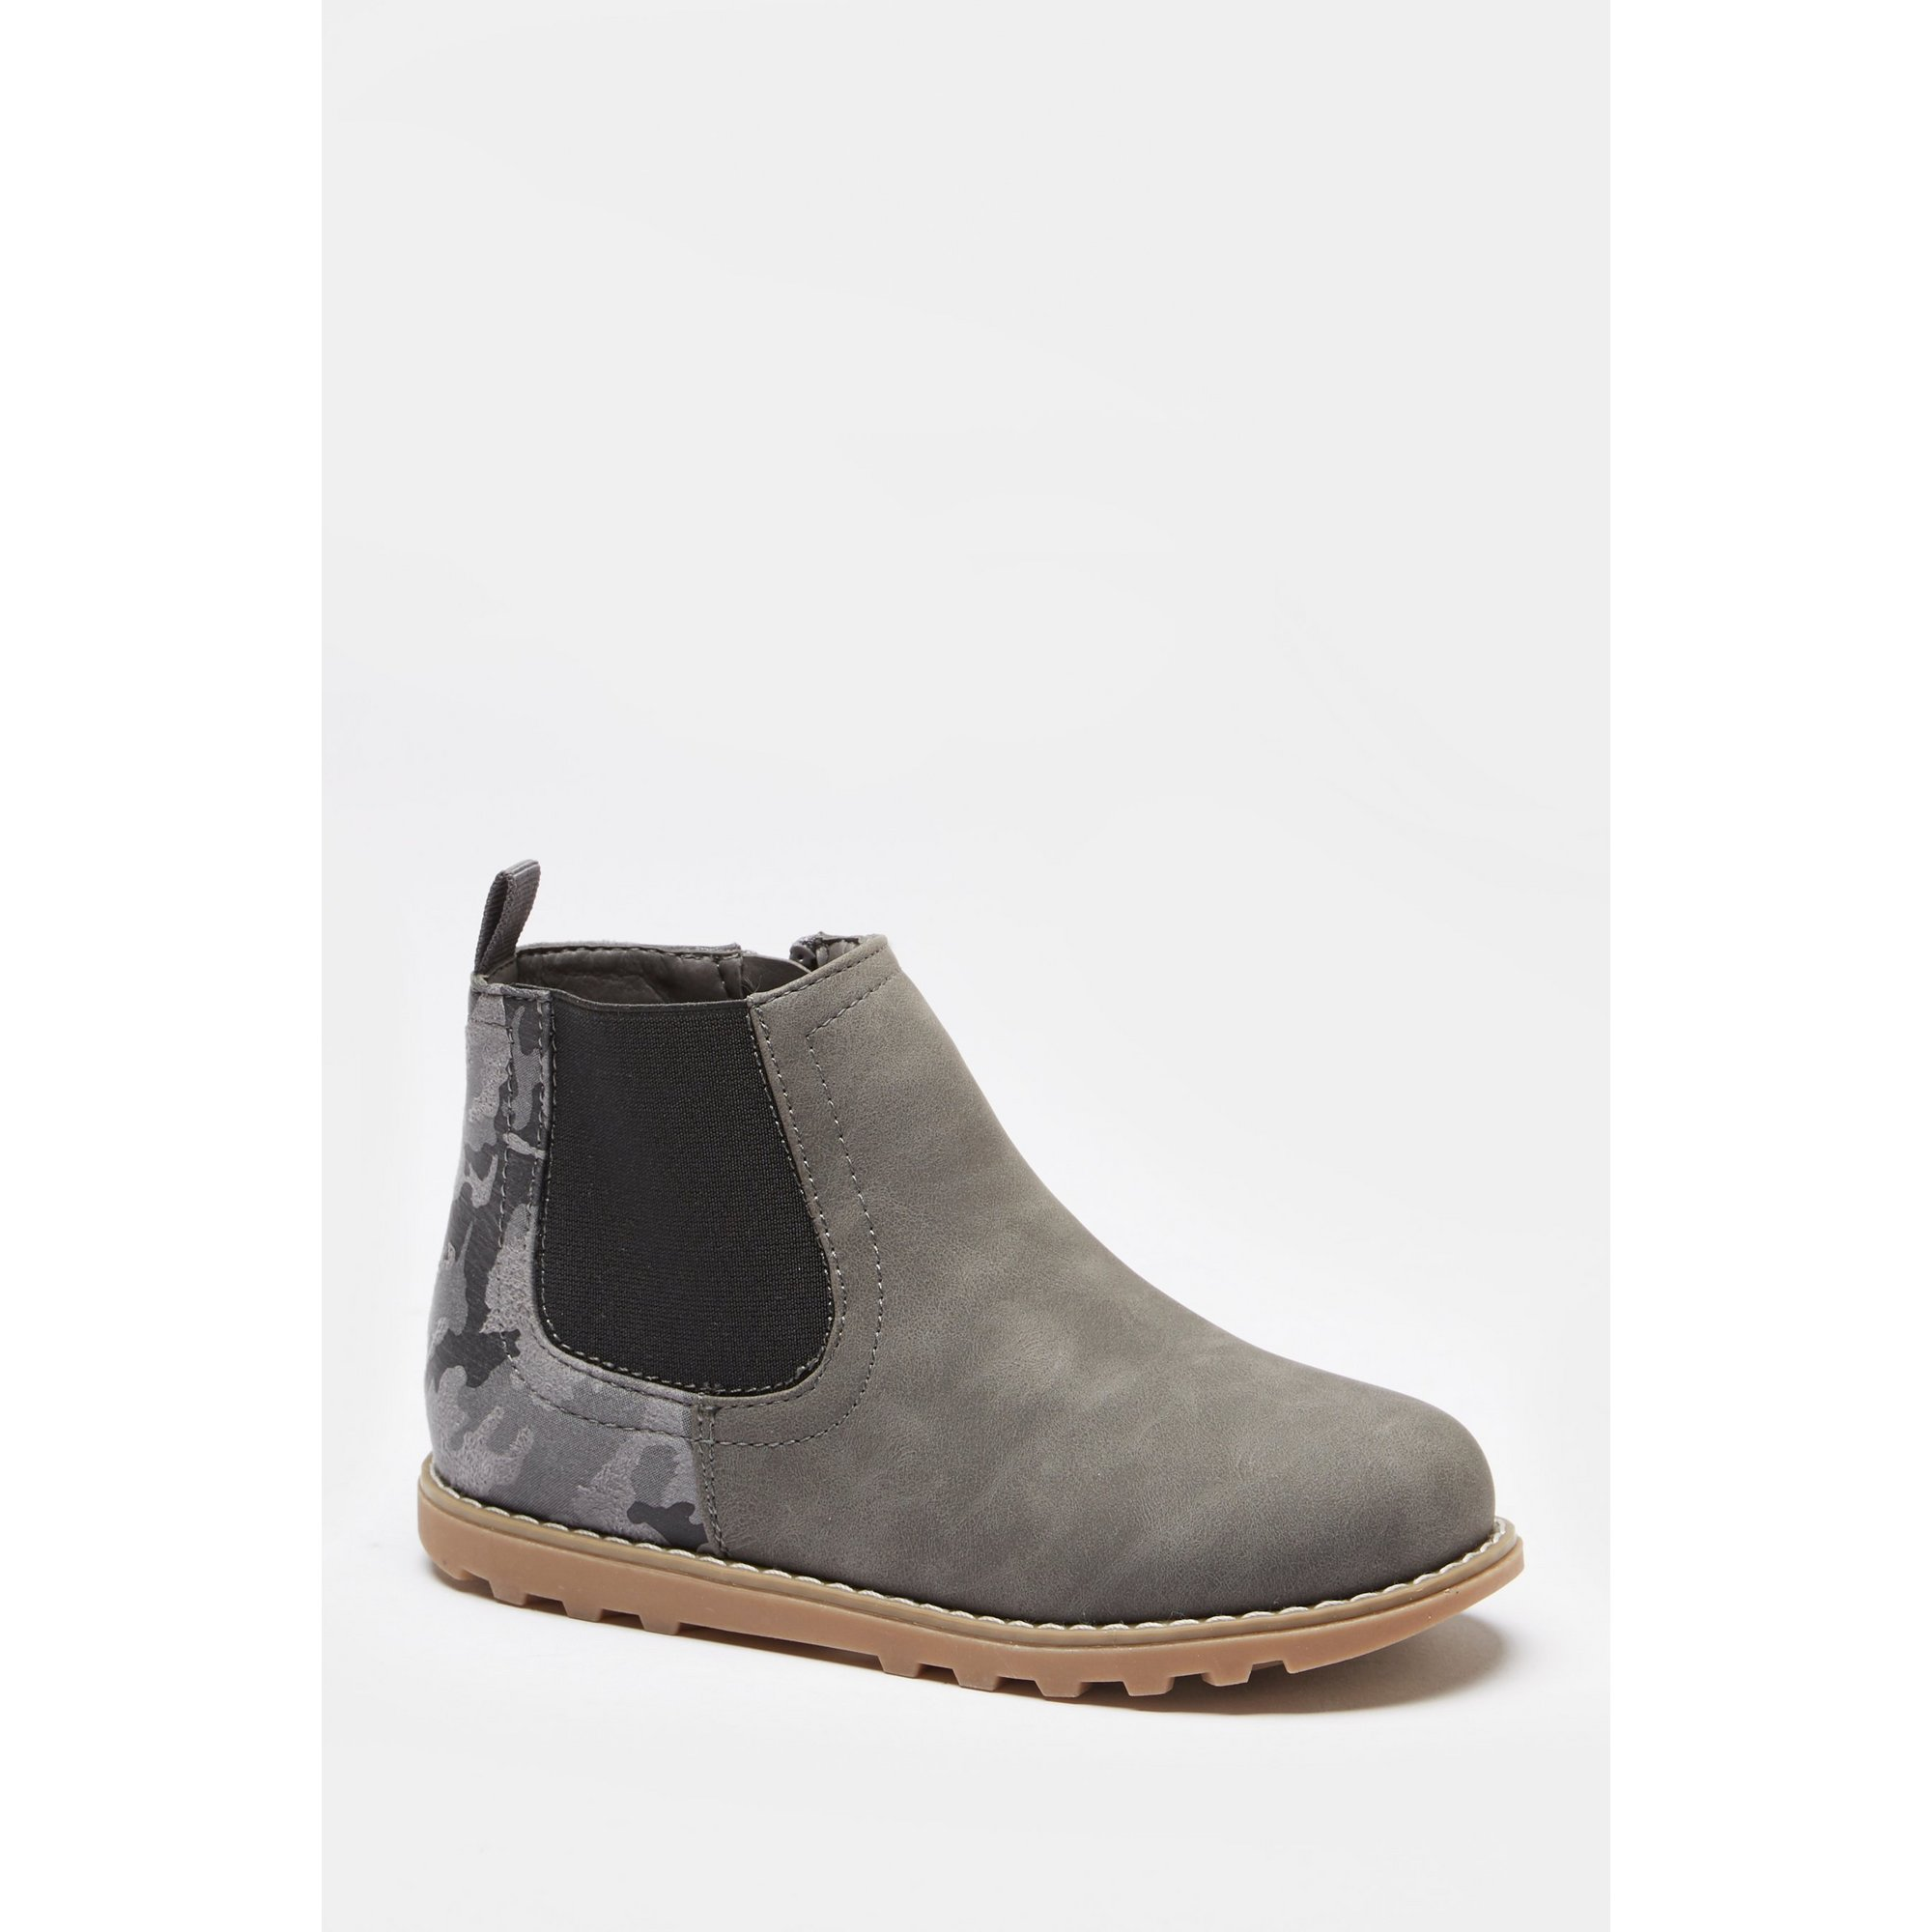 Image of Boys Grey Chelsea Boots